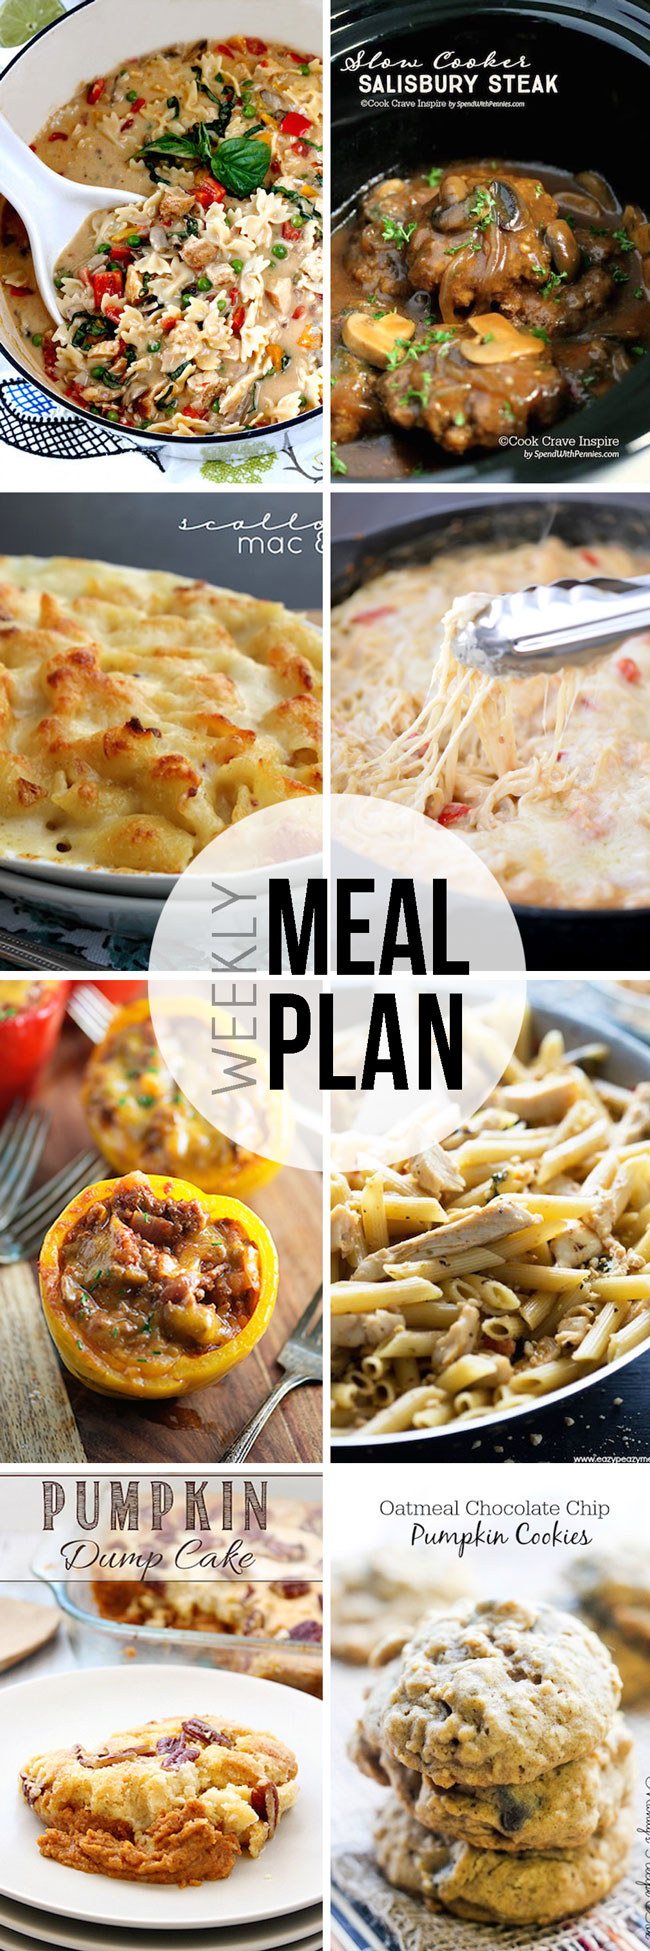 Meal-Plan---Pinterest-15